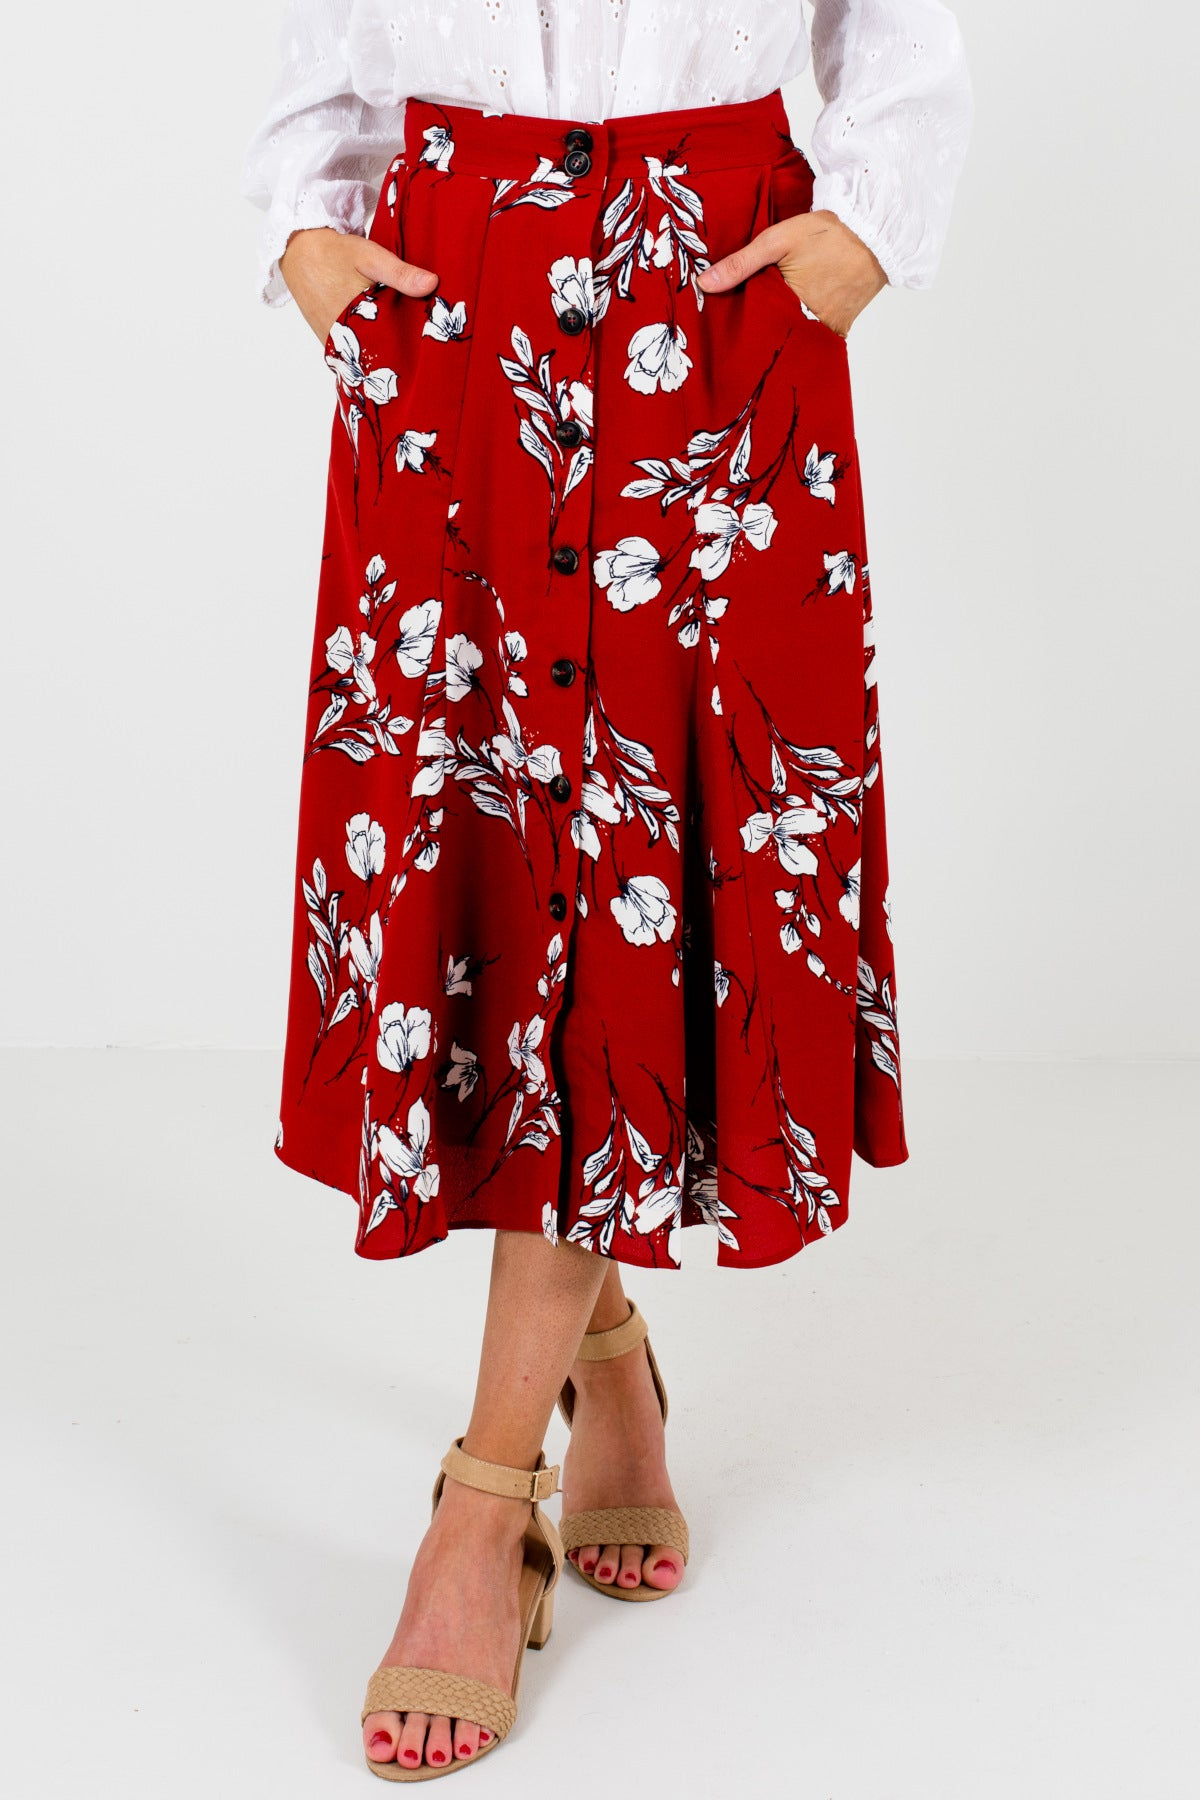 Red White Navy Floral Button Up Midi Skirts with Pockets for Women